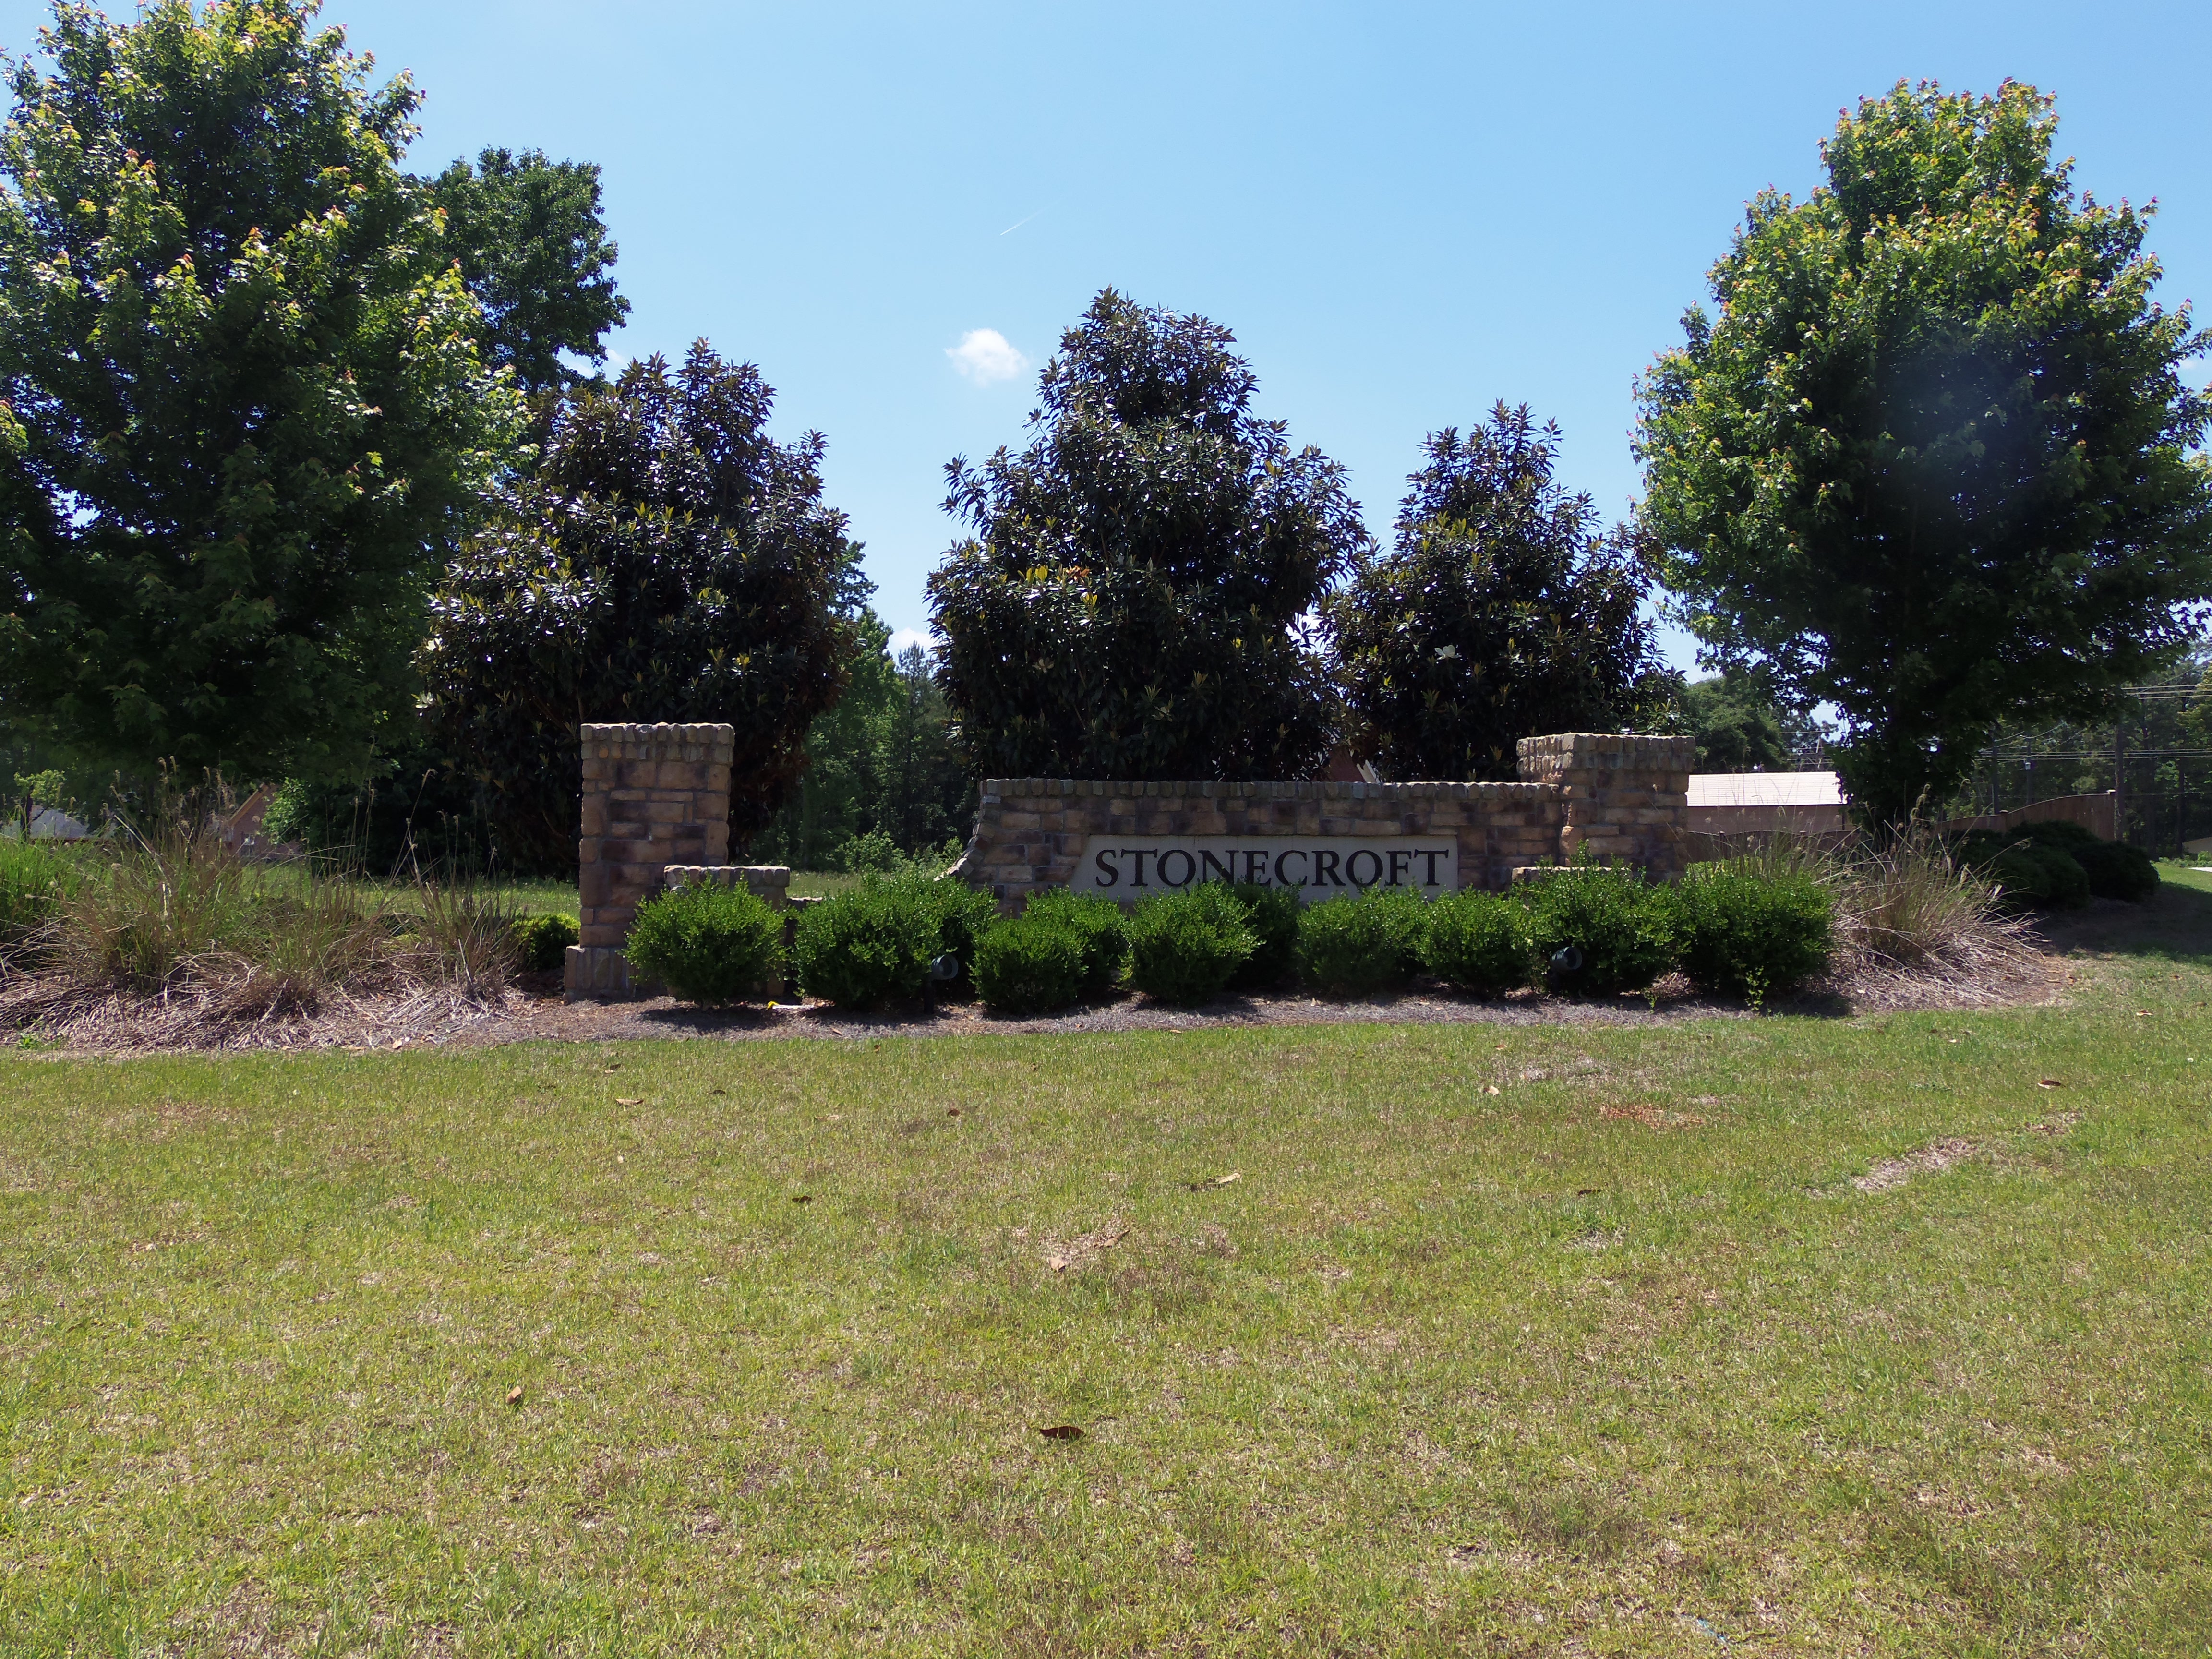 Homes For Sale in Stonecroft in Sumter, SC